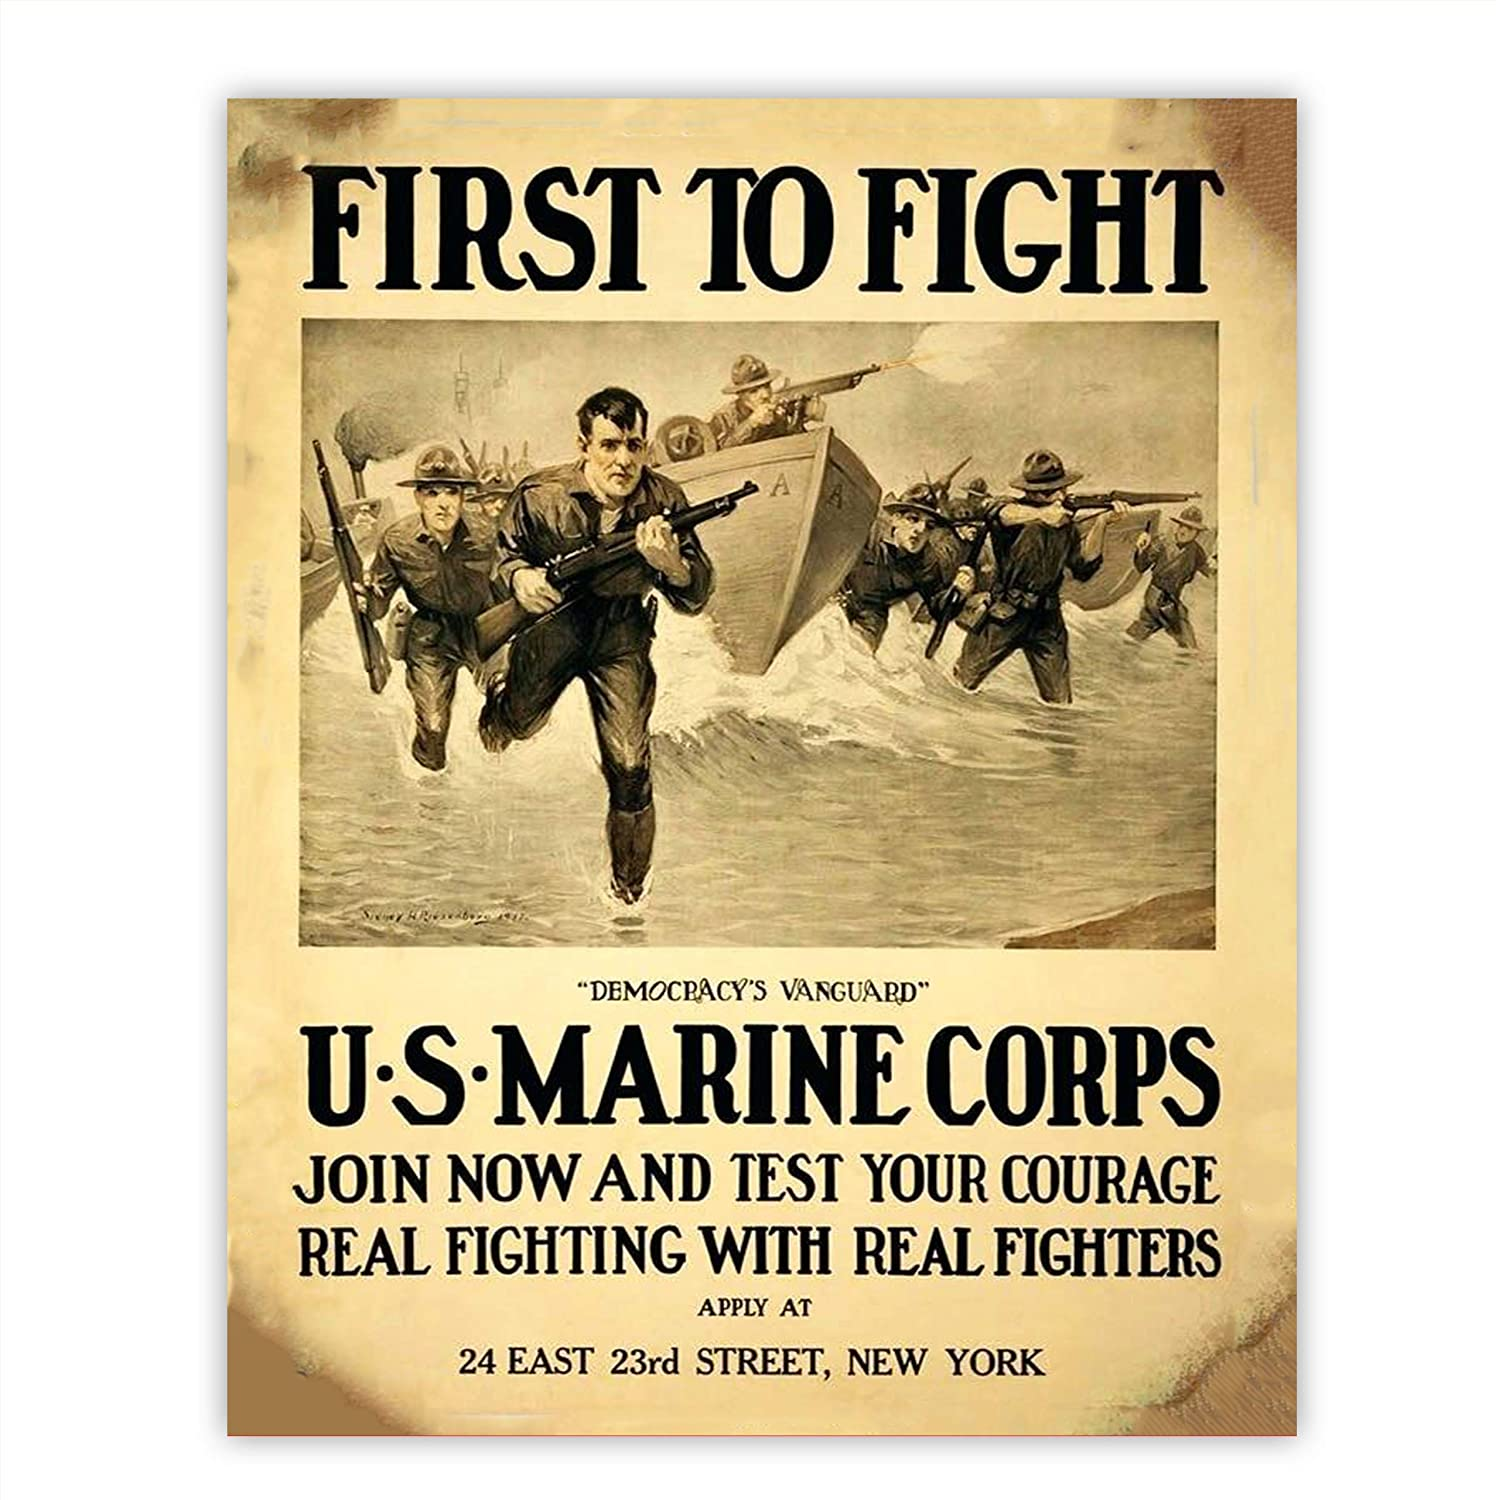 """""""First to Fight-U.S. Marine Corps"""" Vintage Poster Print-8 x 10"""" Wall Decor-Ready To Frame. Antique Recruitment Poster. Retro Military Decor for Home-Office-Cave. Perfect Gift for All Leathernecks!"""